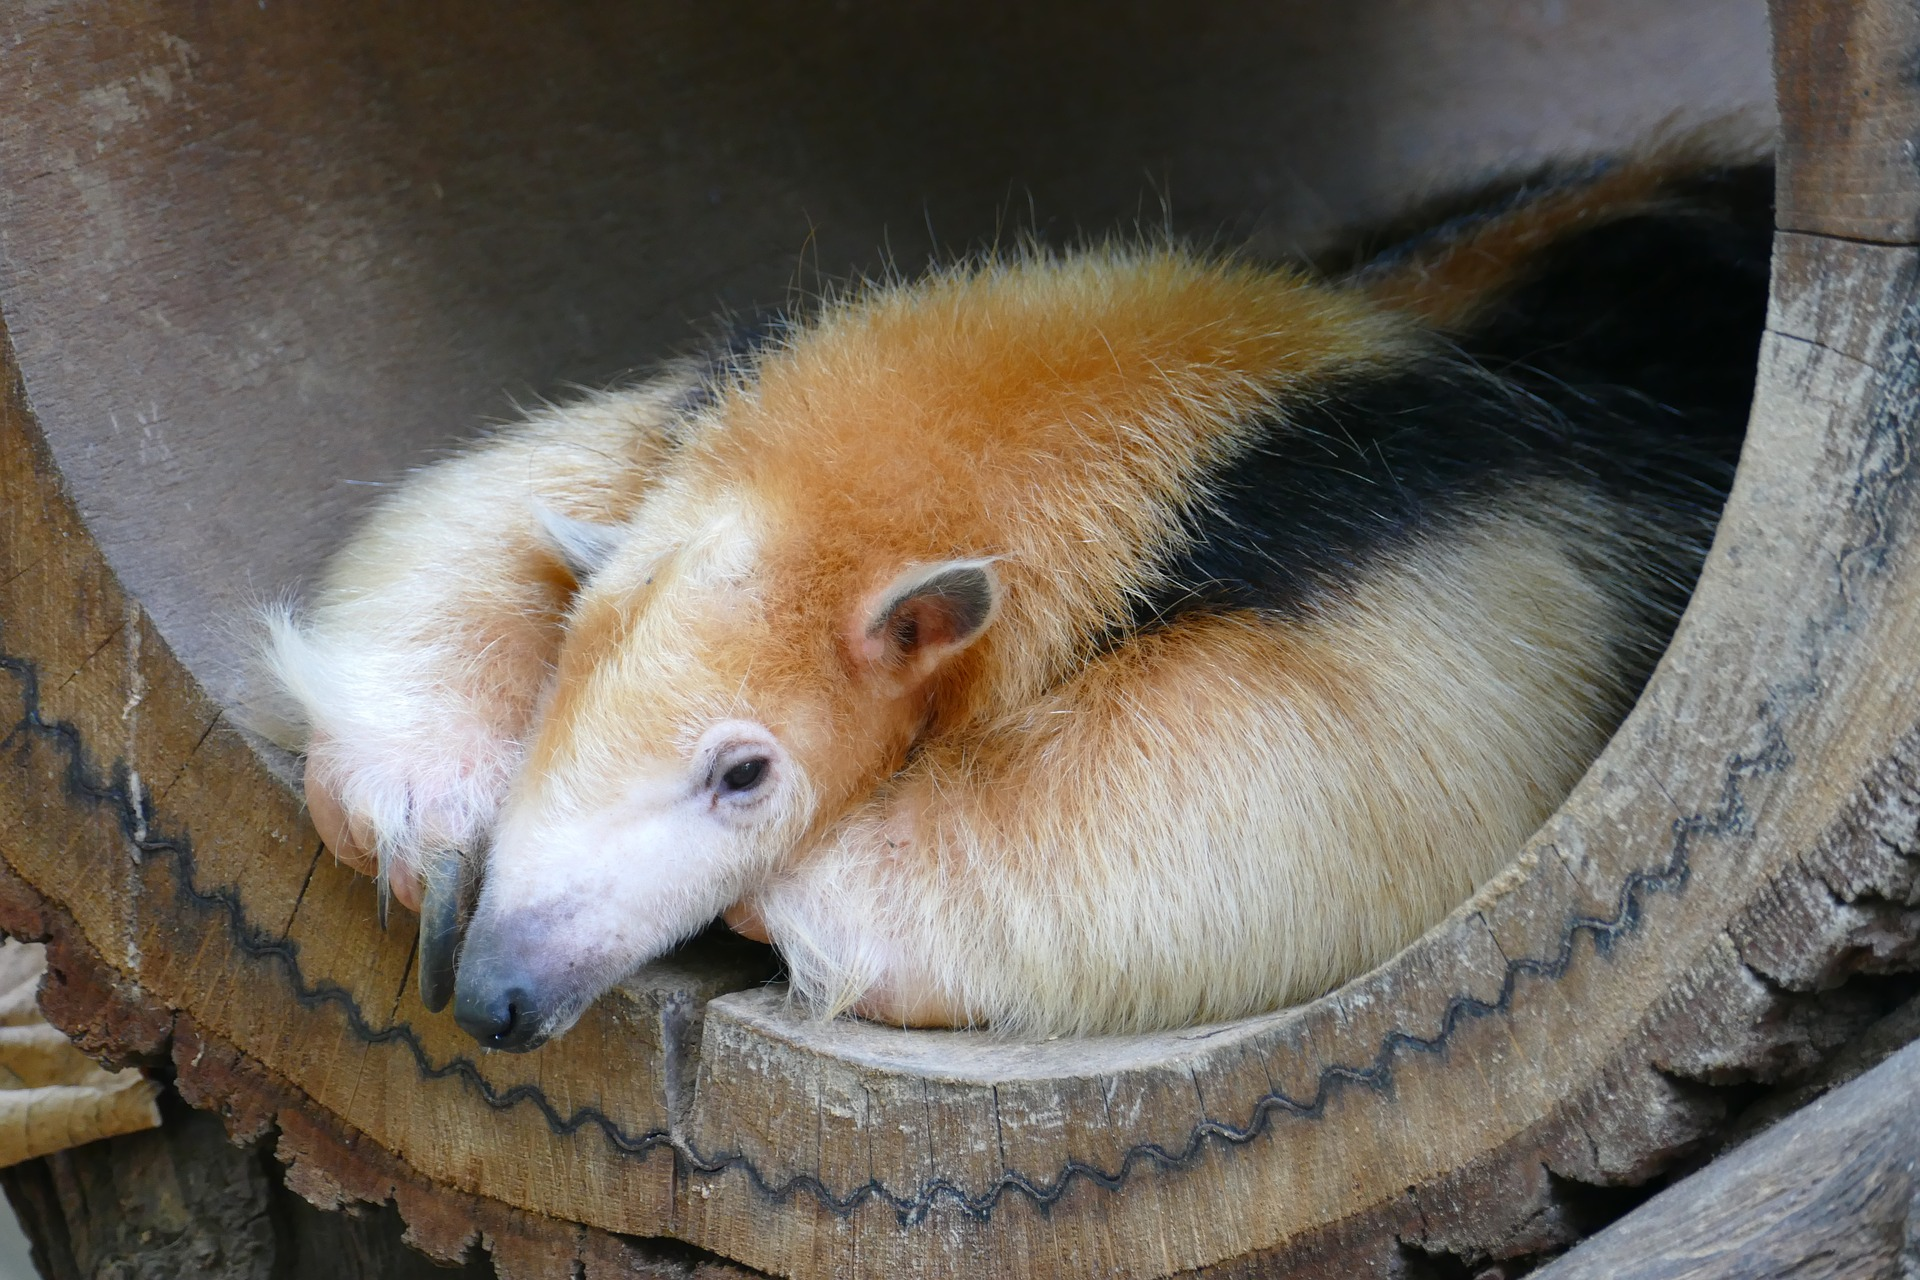 Anteater in a basket